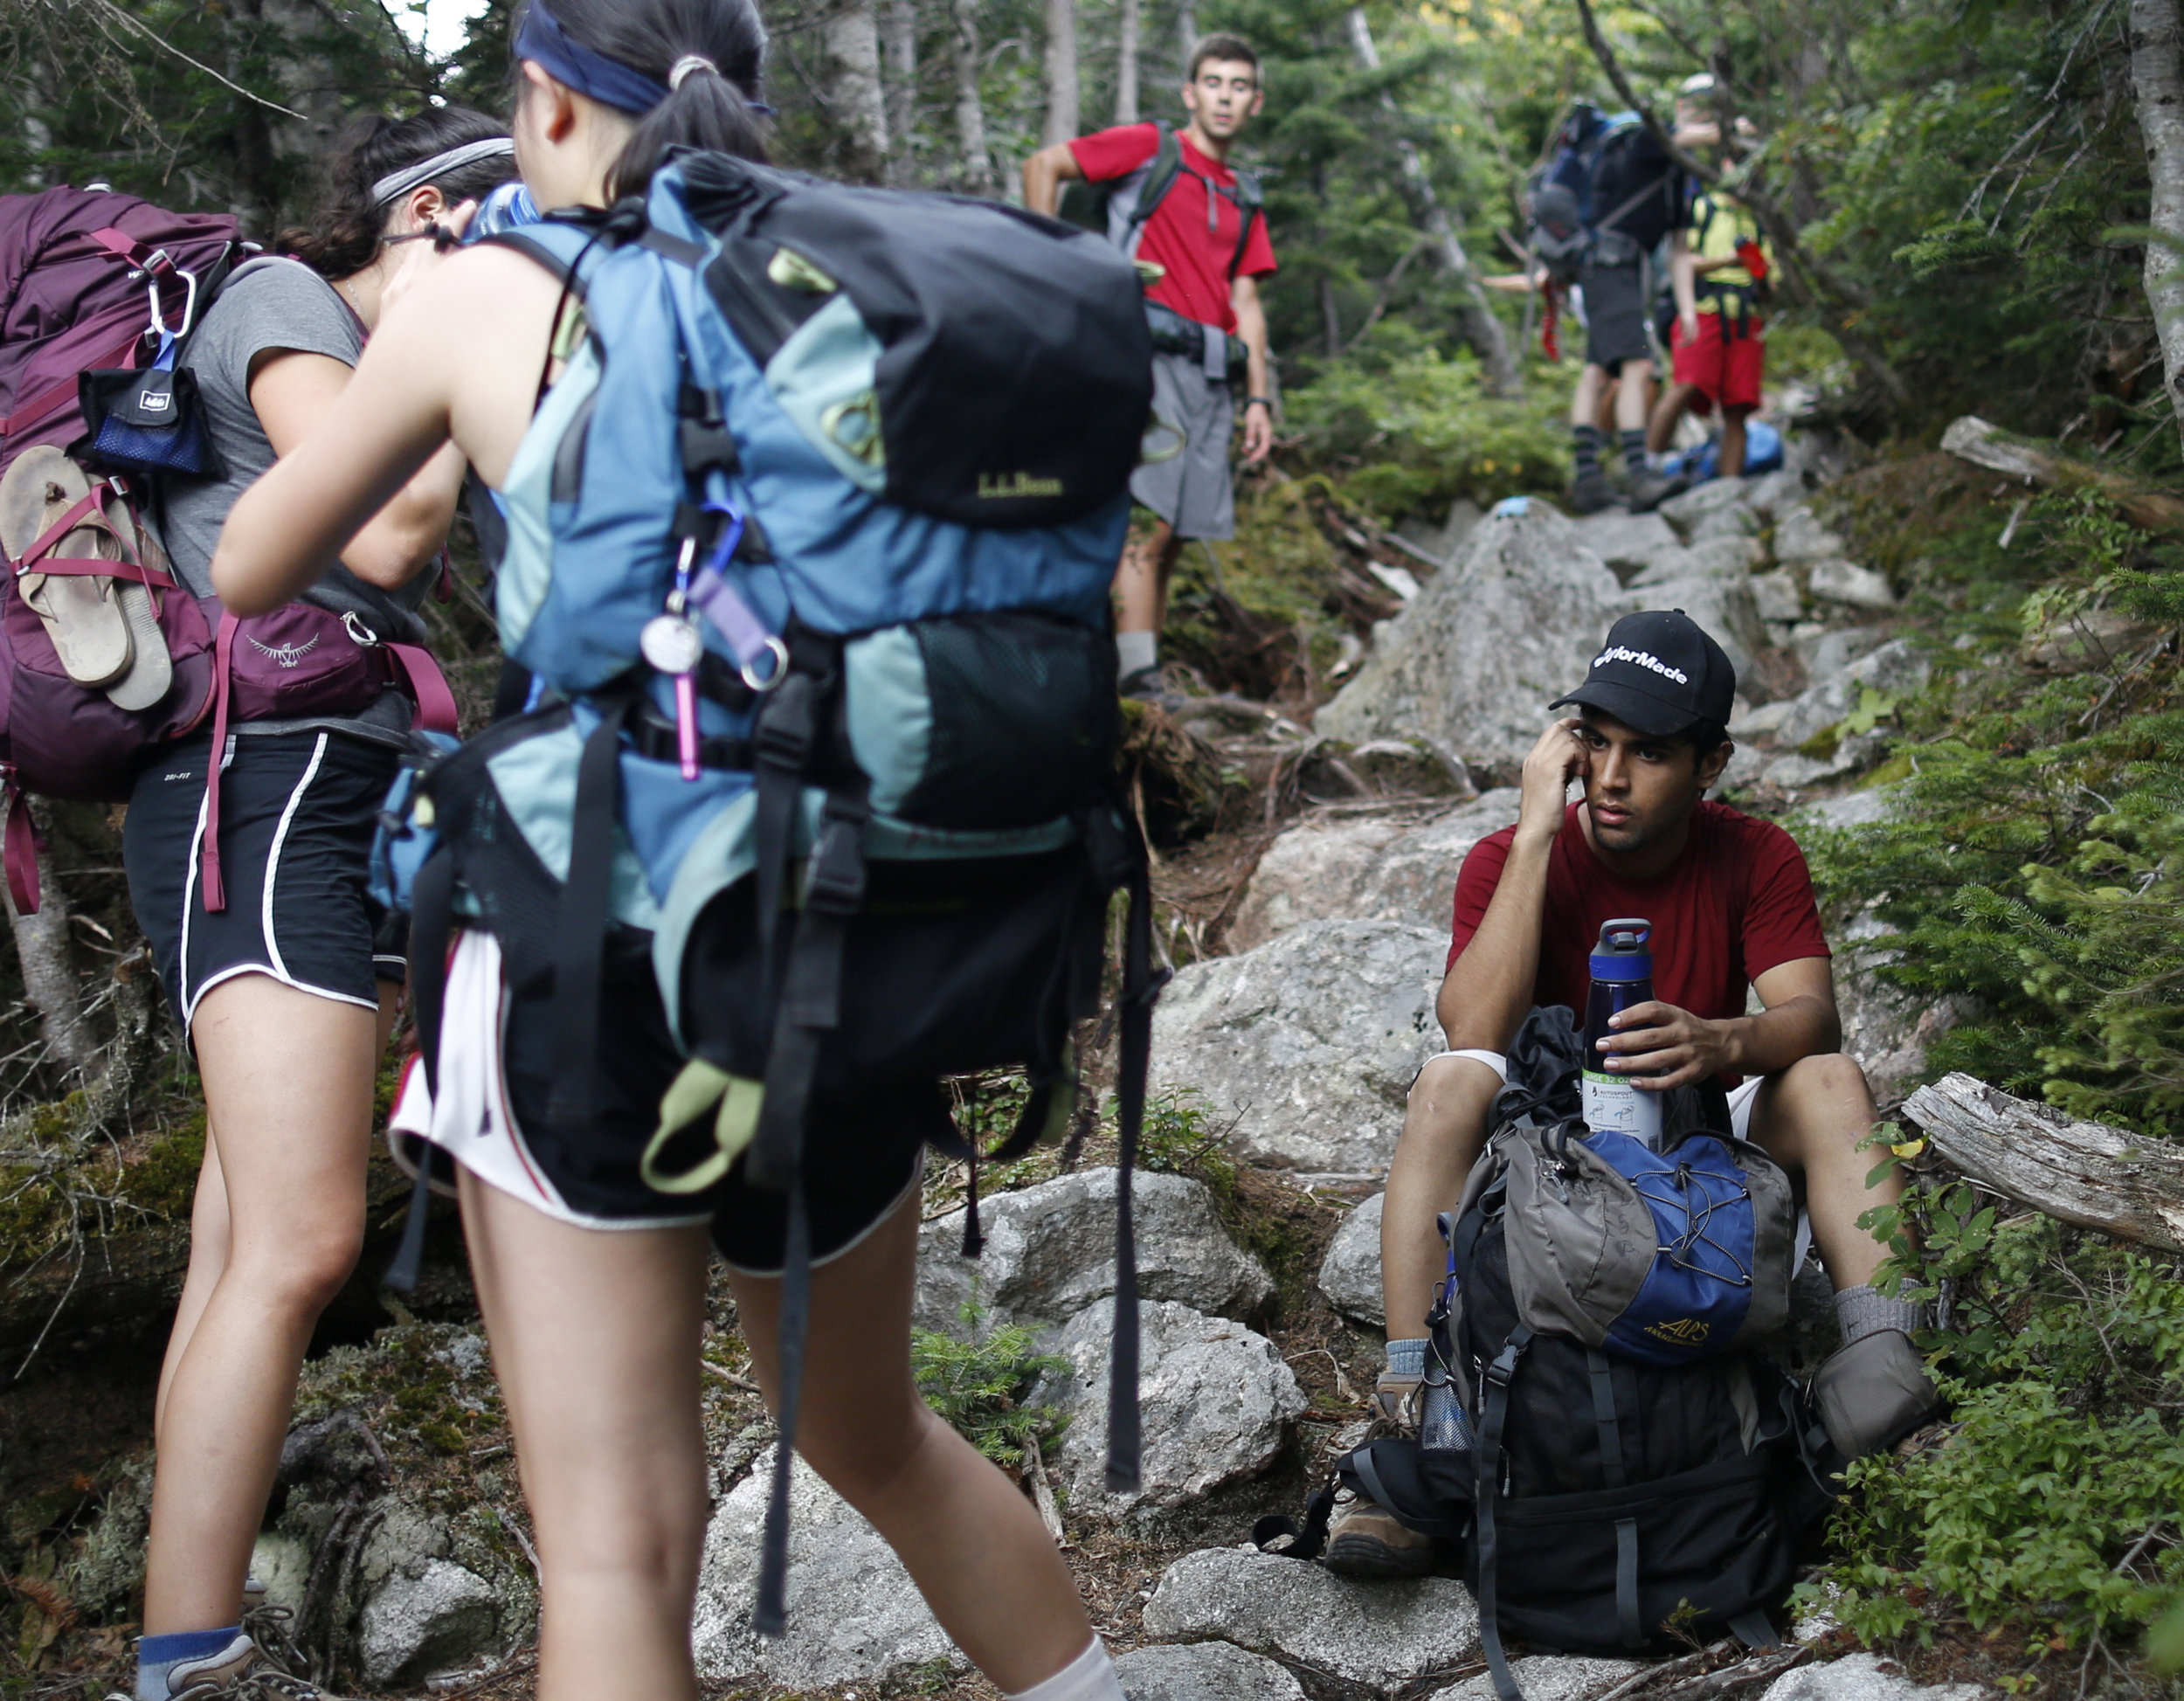 The group pauses for a water break during the hike up Hamlin Peak. Divyamaan Sahoo, right, who had been in the United States less than 24 hours before departing for the trip, was diagnosed with malaria after returning to campus.